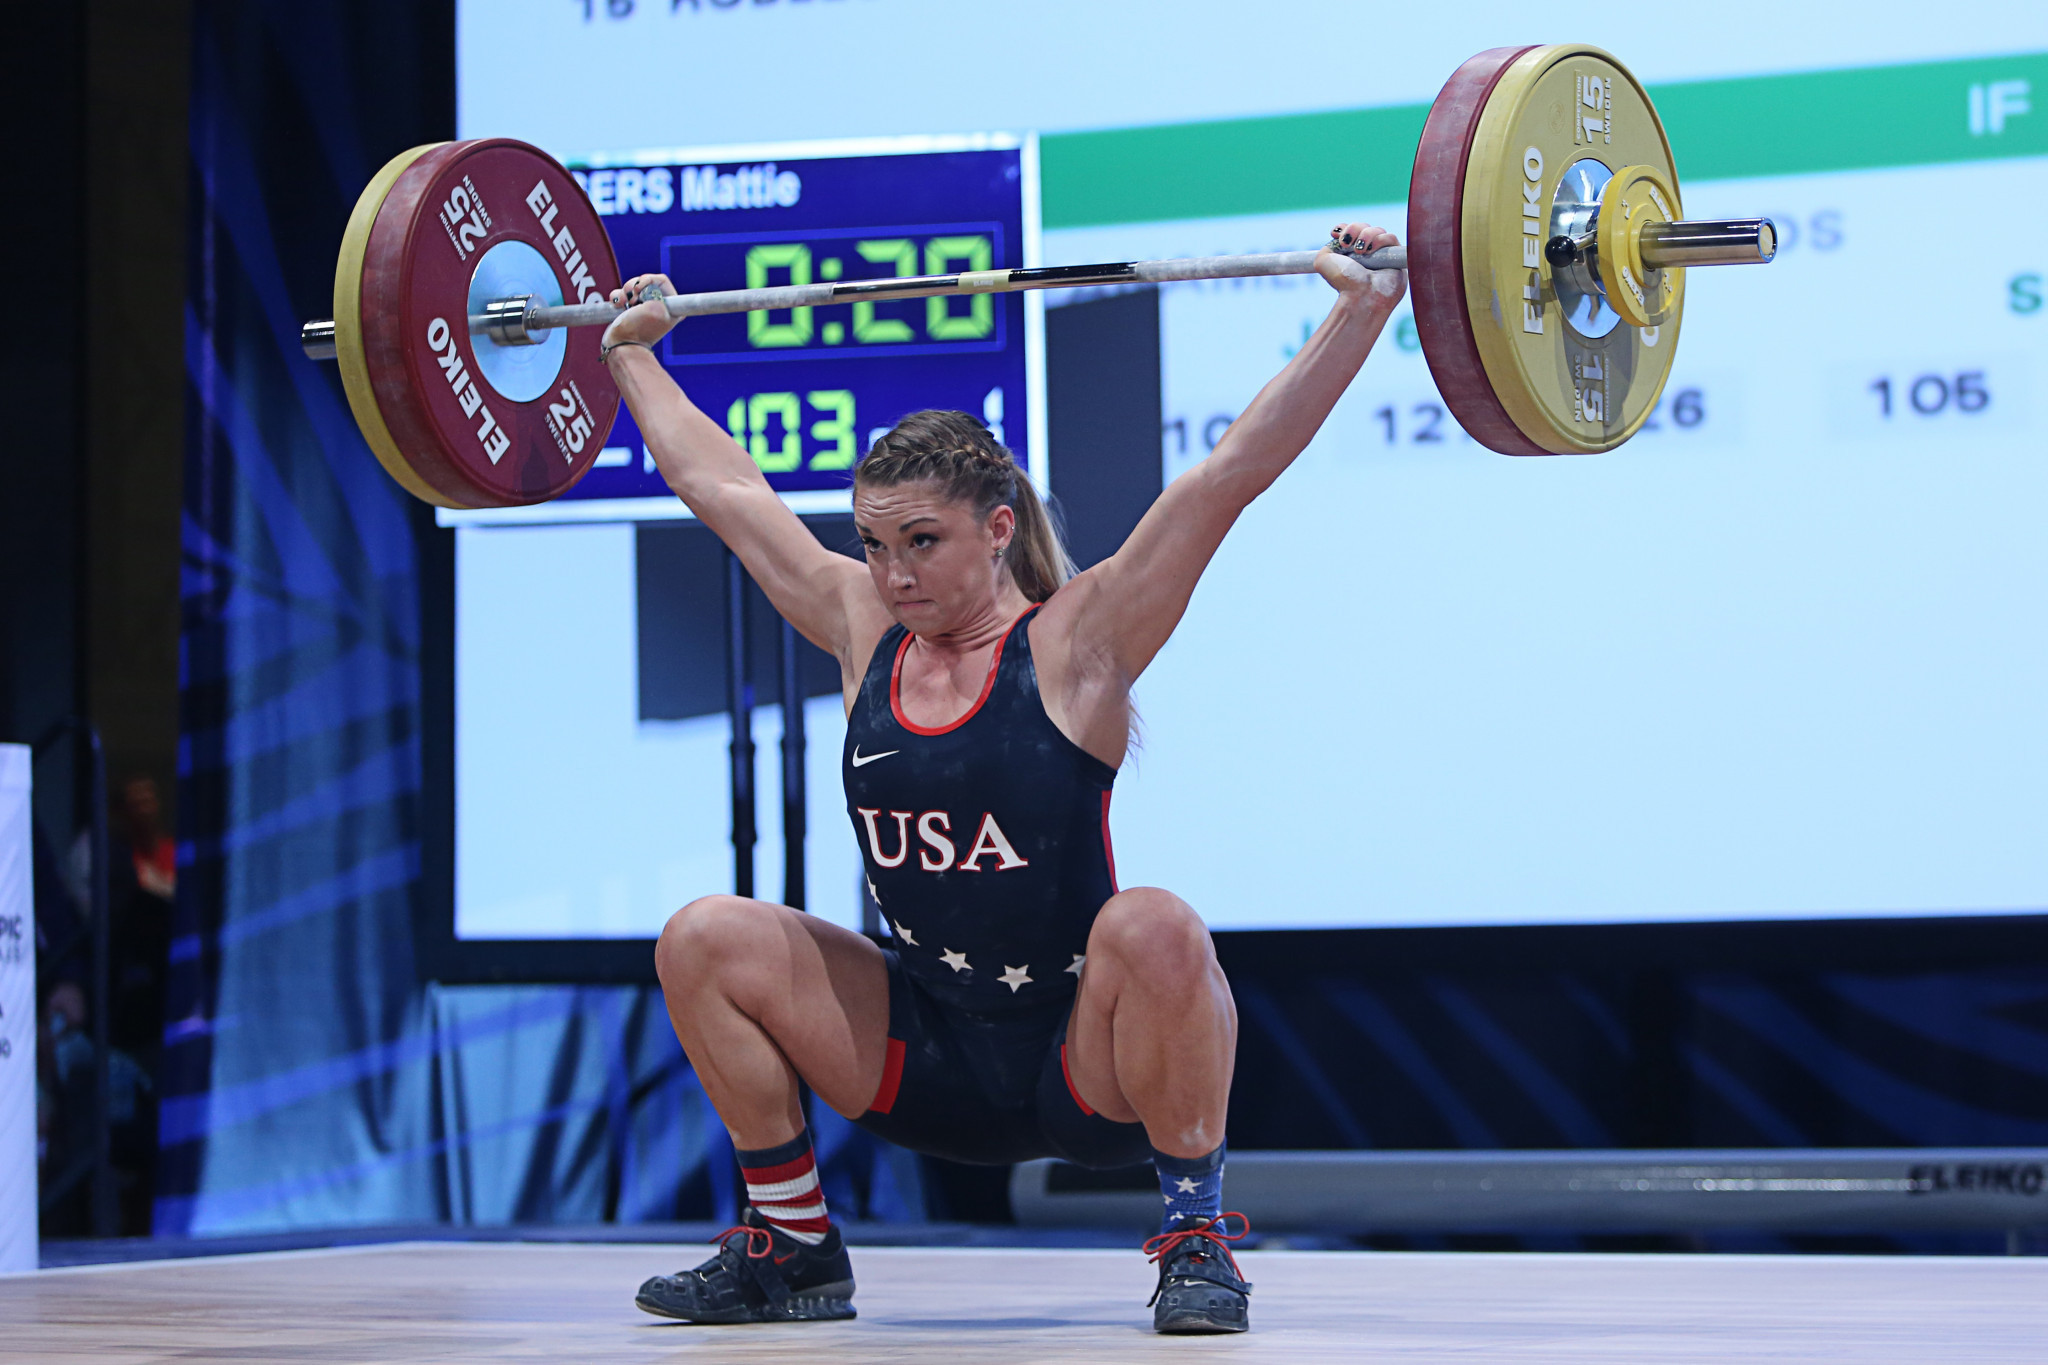 USA Weightlifting announces Tokyo 2020 training camp based in Hawaii